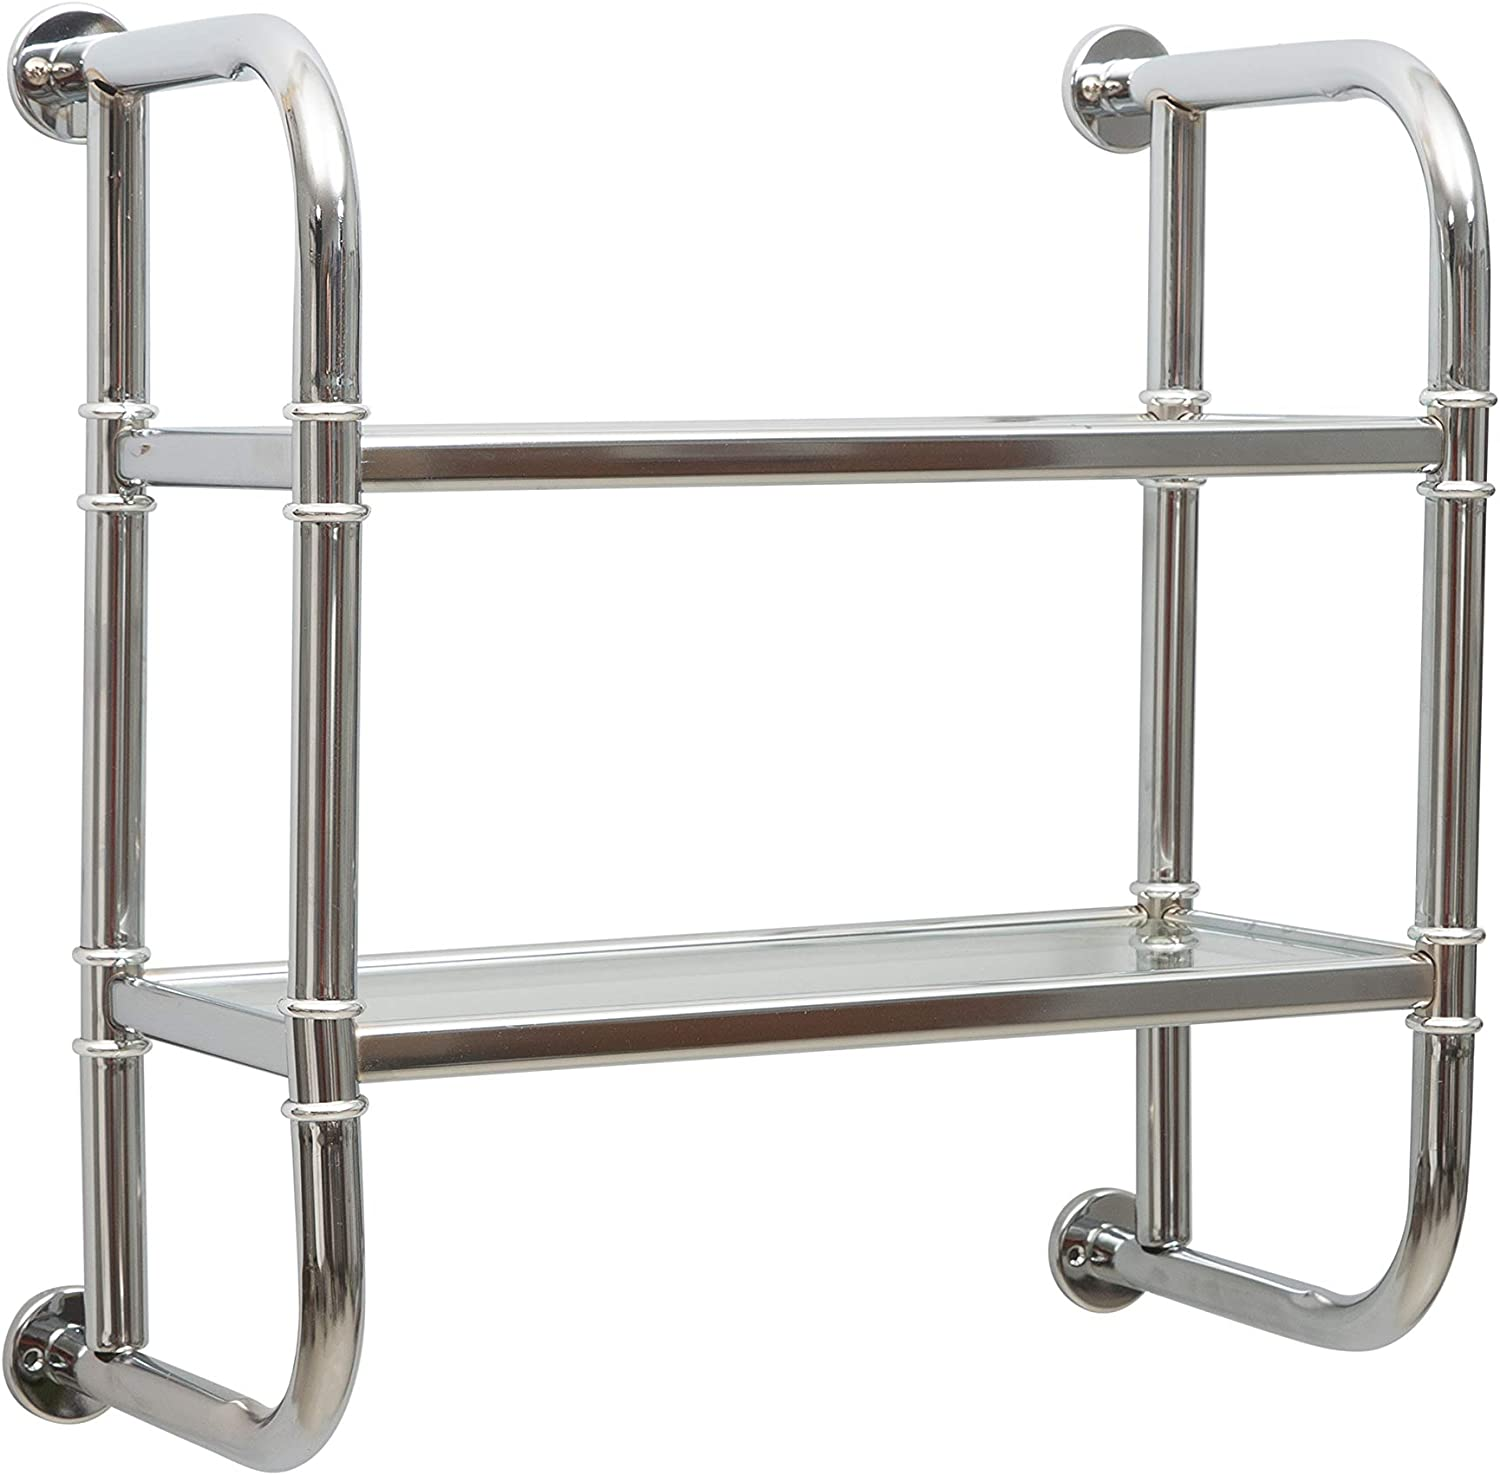 Amazon Com Organize It All 2 Tier Chrome Pipe Mounted Tempered Glass Bathroom Storage Shelf Home Kitchen